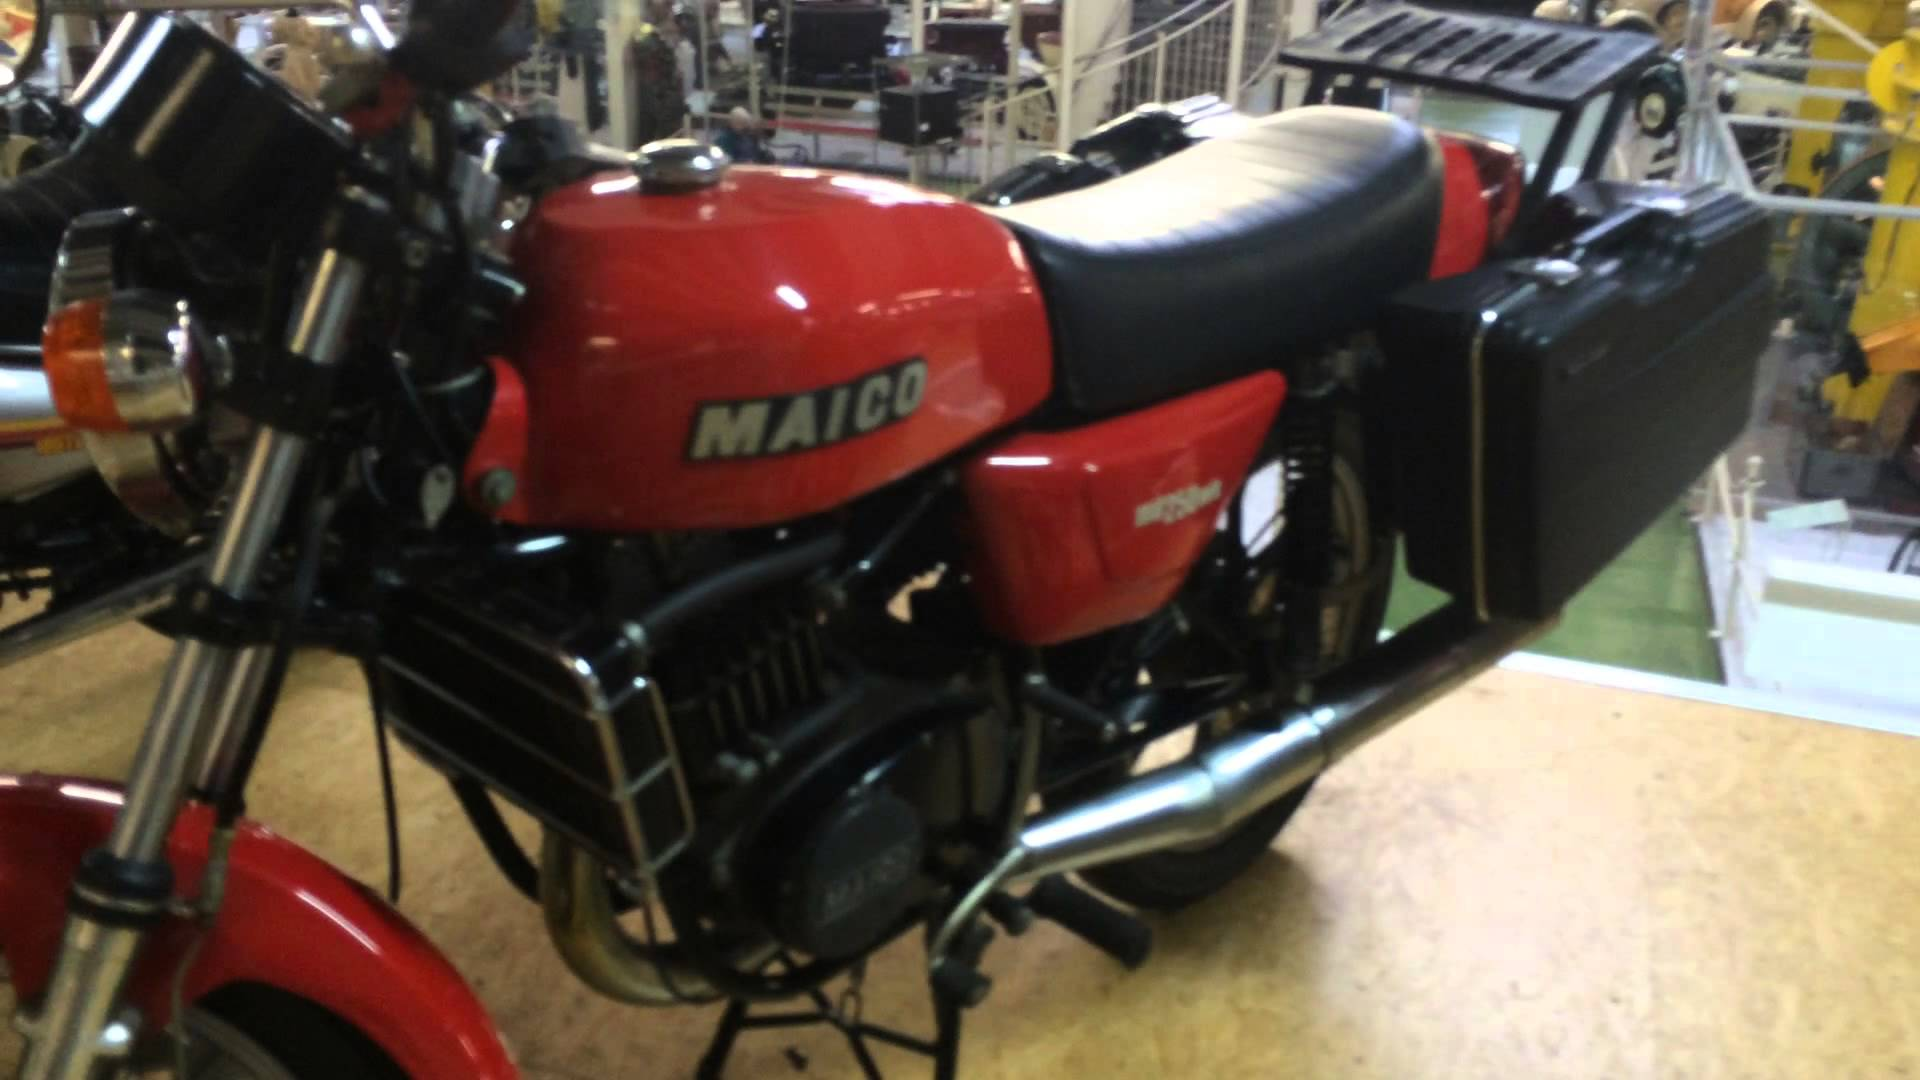 Maico MD 250 WK 1981 images #103504